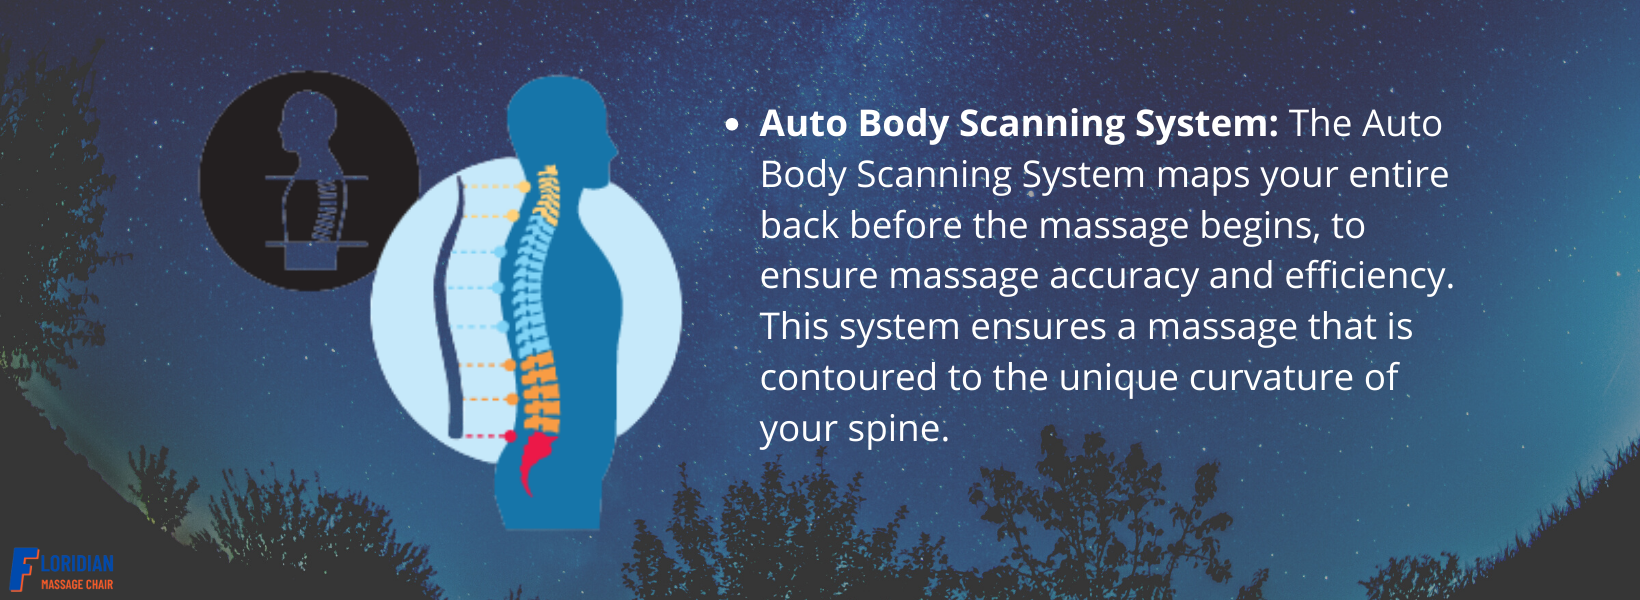 Auto Body Scanning System: The Auto Body Scanning System maps your entire back before the massage begins, to ensure massage accuracy and efficiency. This system ensures a massage that is contoured to the unique curvature of your spine.